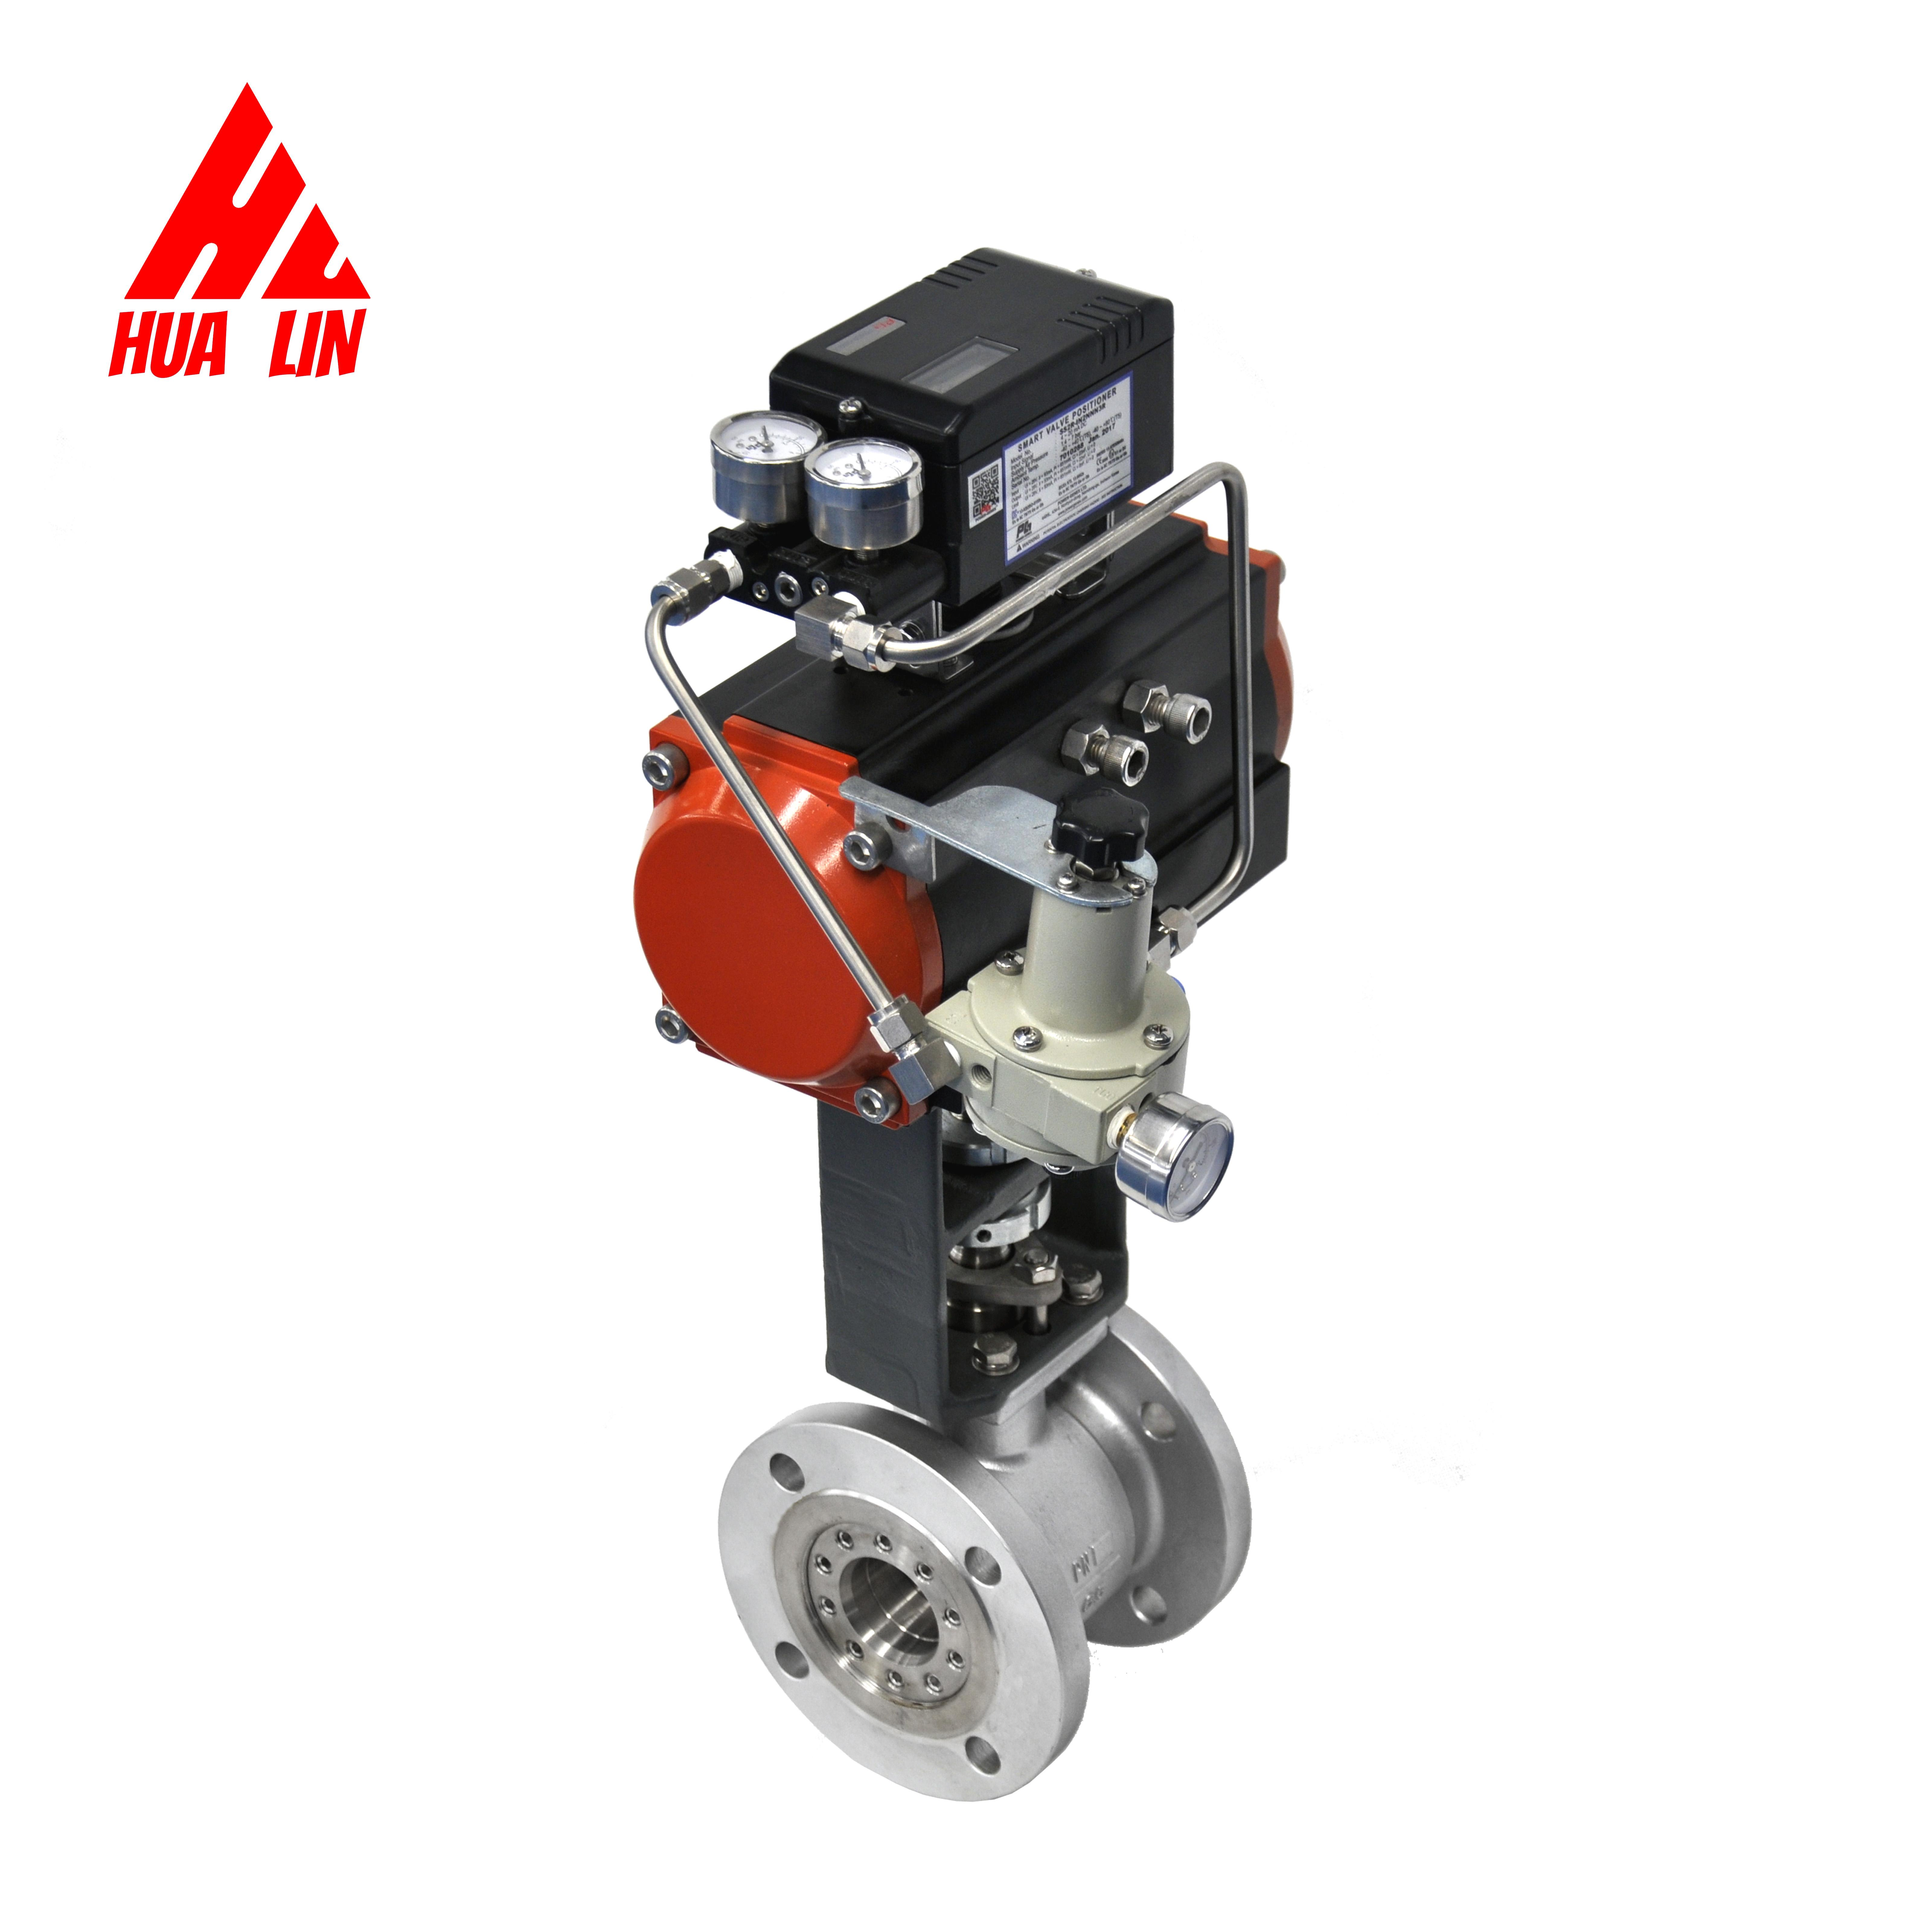 2017 hot new products propane temperature control valve pressure relief pneumatic butterfly with good price